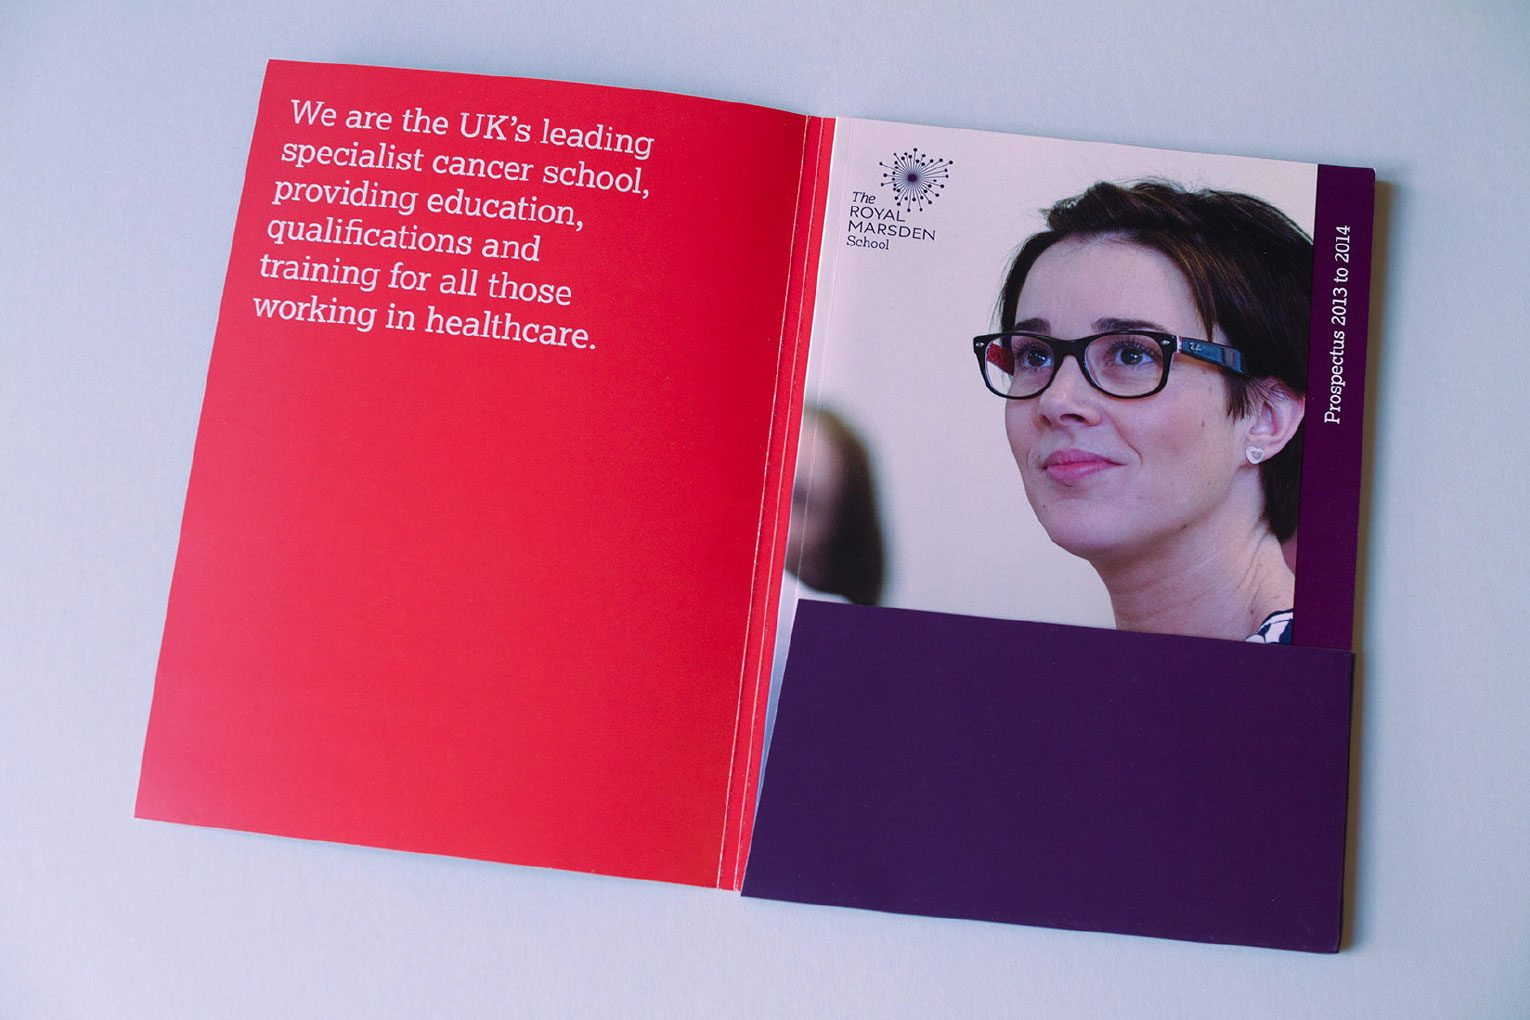 Cancer education for healthcare professionals inside course folder and cover of prospectus.